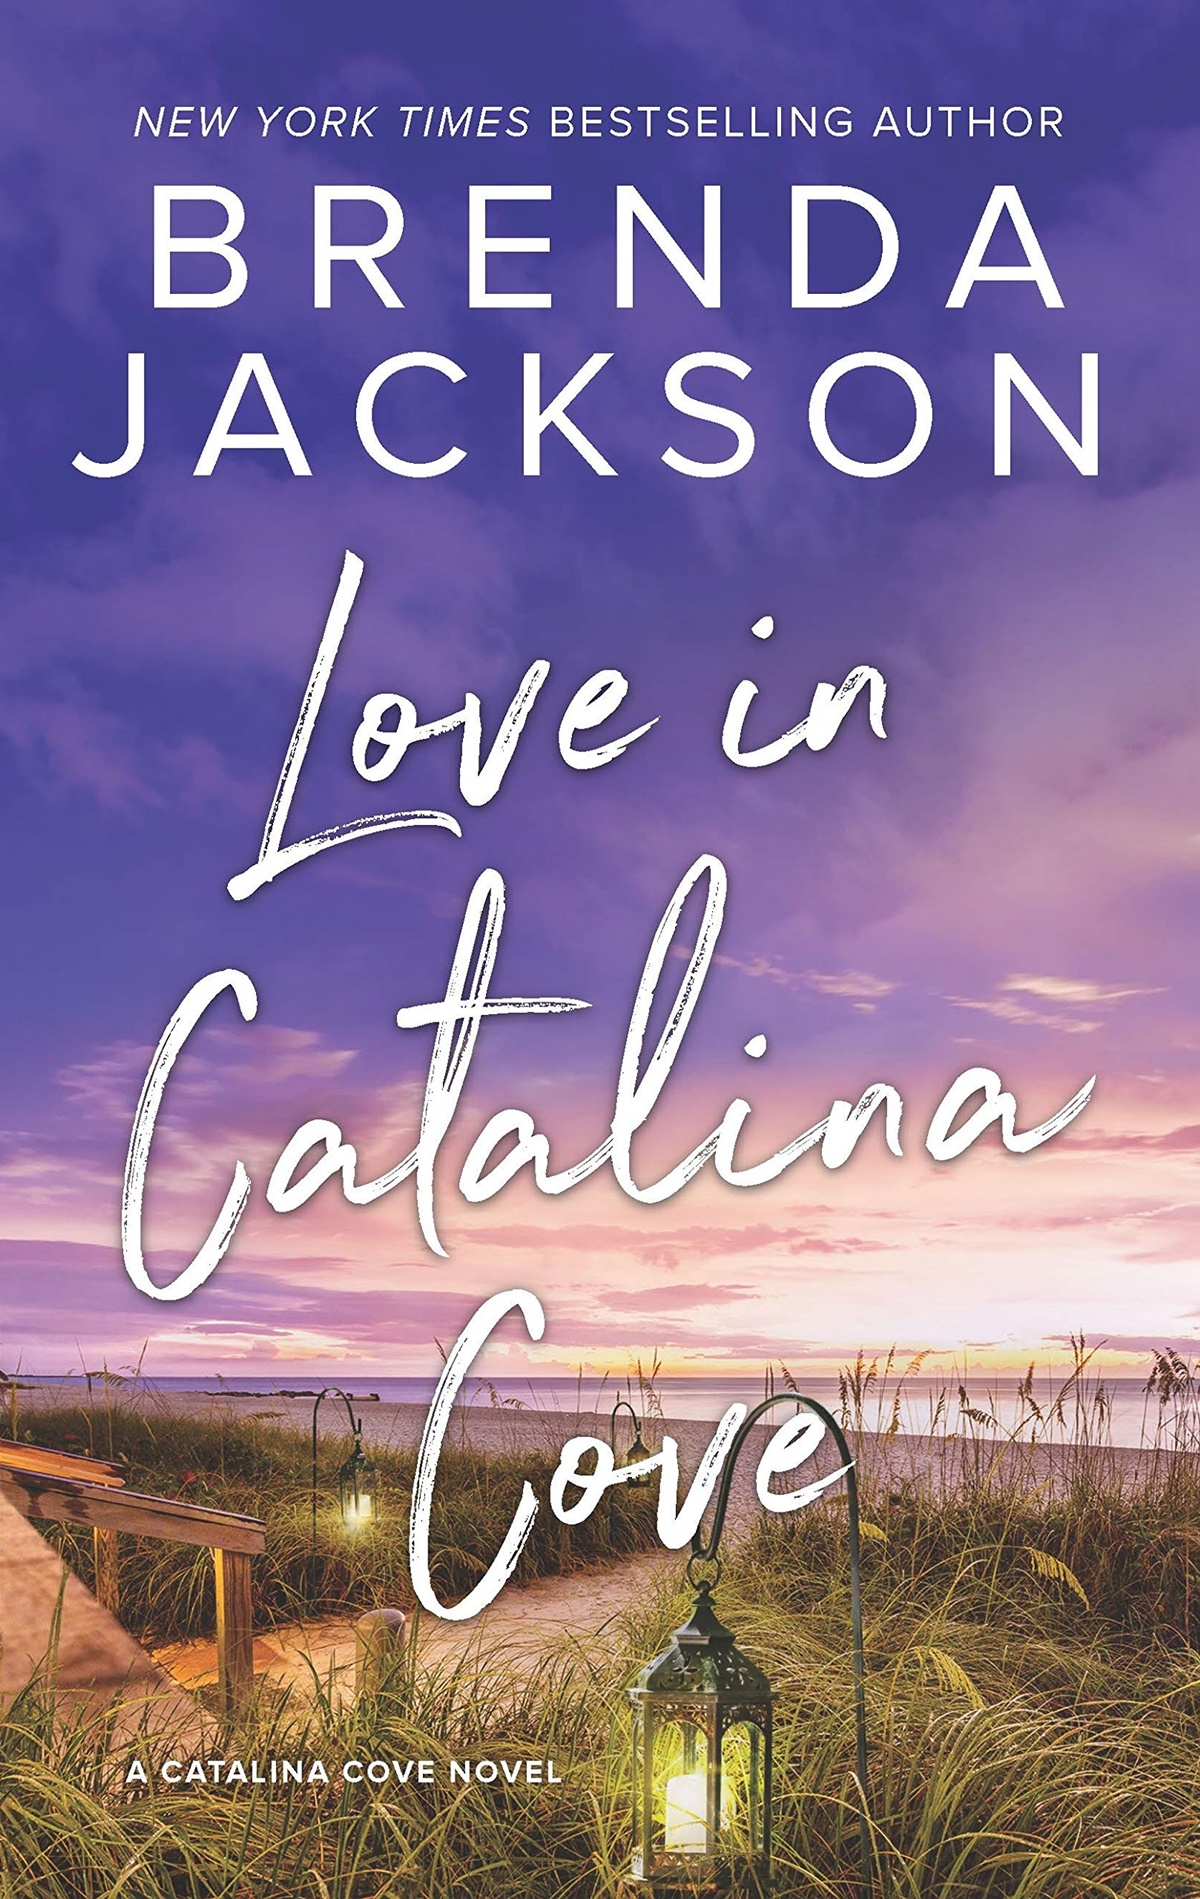 Summer Romance Reading List, cover of Love in Catalina Cover by Brenda Jackson, books